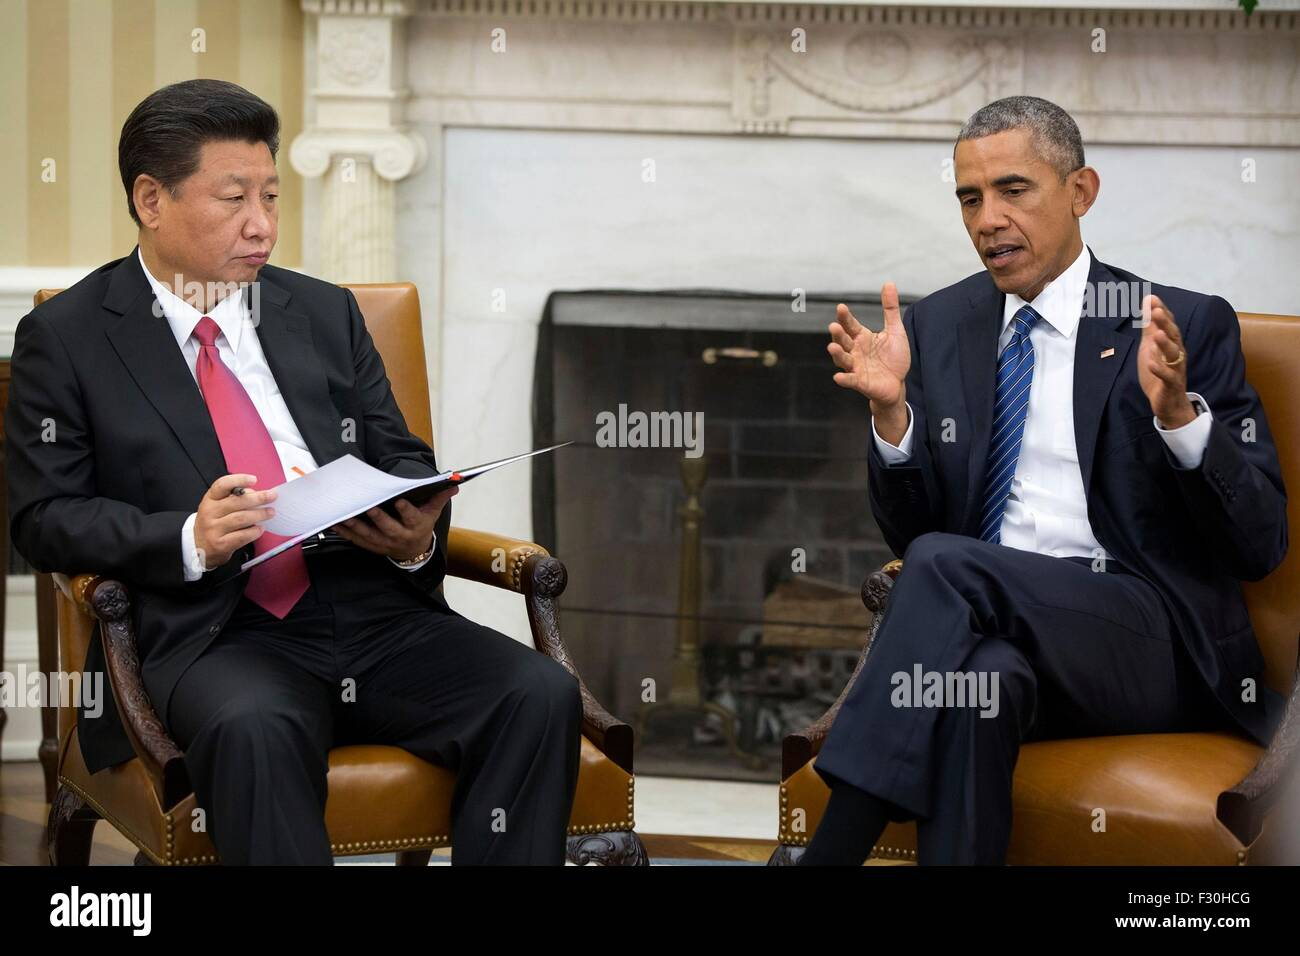 Washington DC, US. 25th Sep, 2015. U.S. President Barack Obama and Chinese President Xi Jinping hold a bilateral - Stock Image